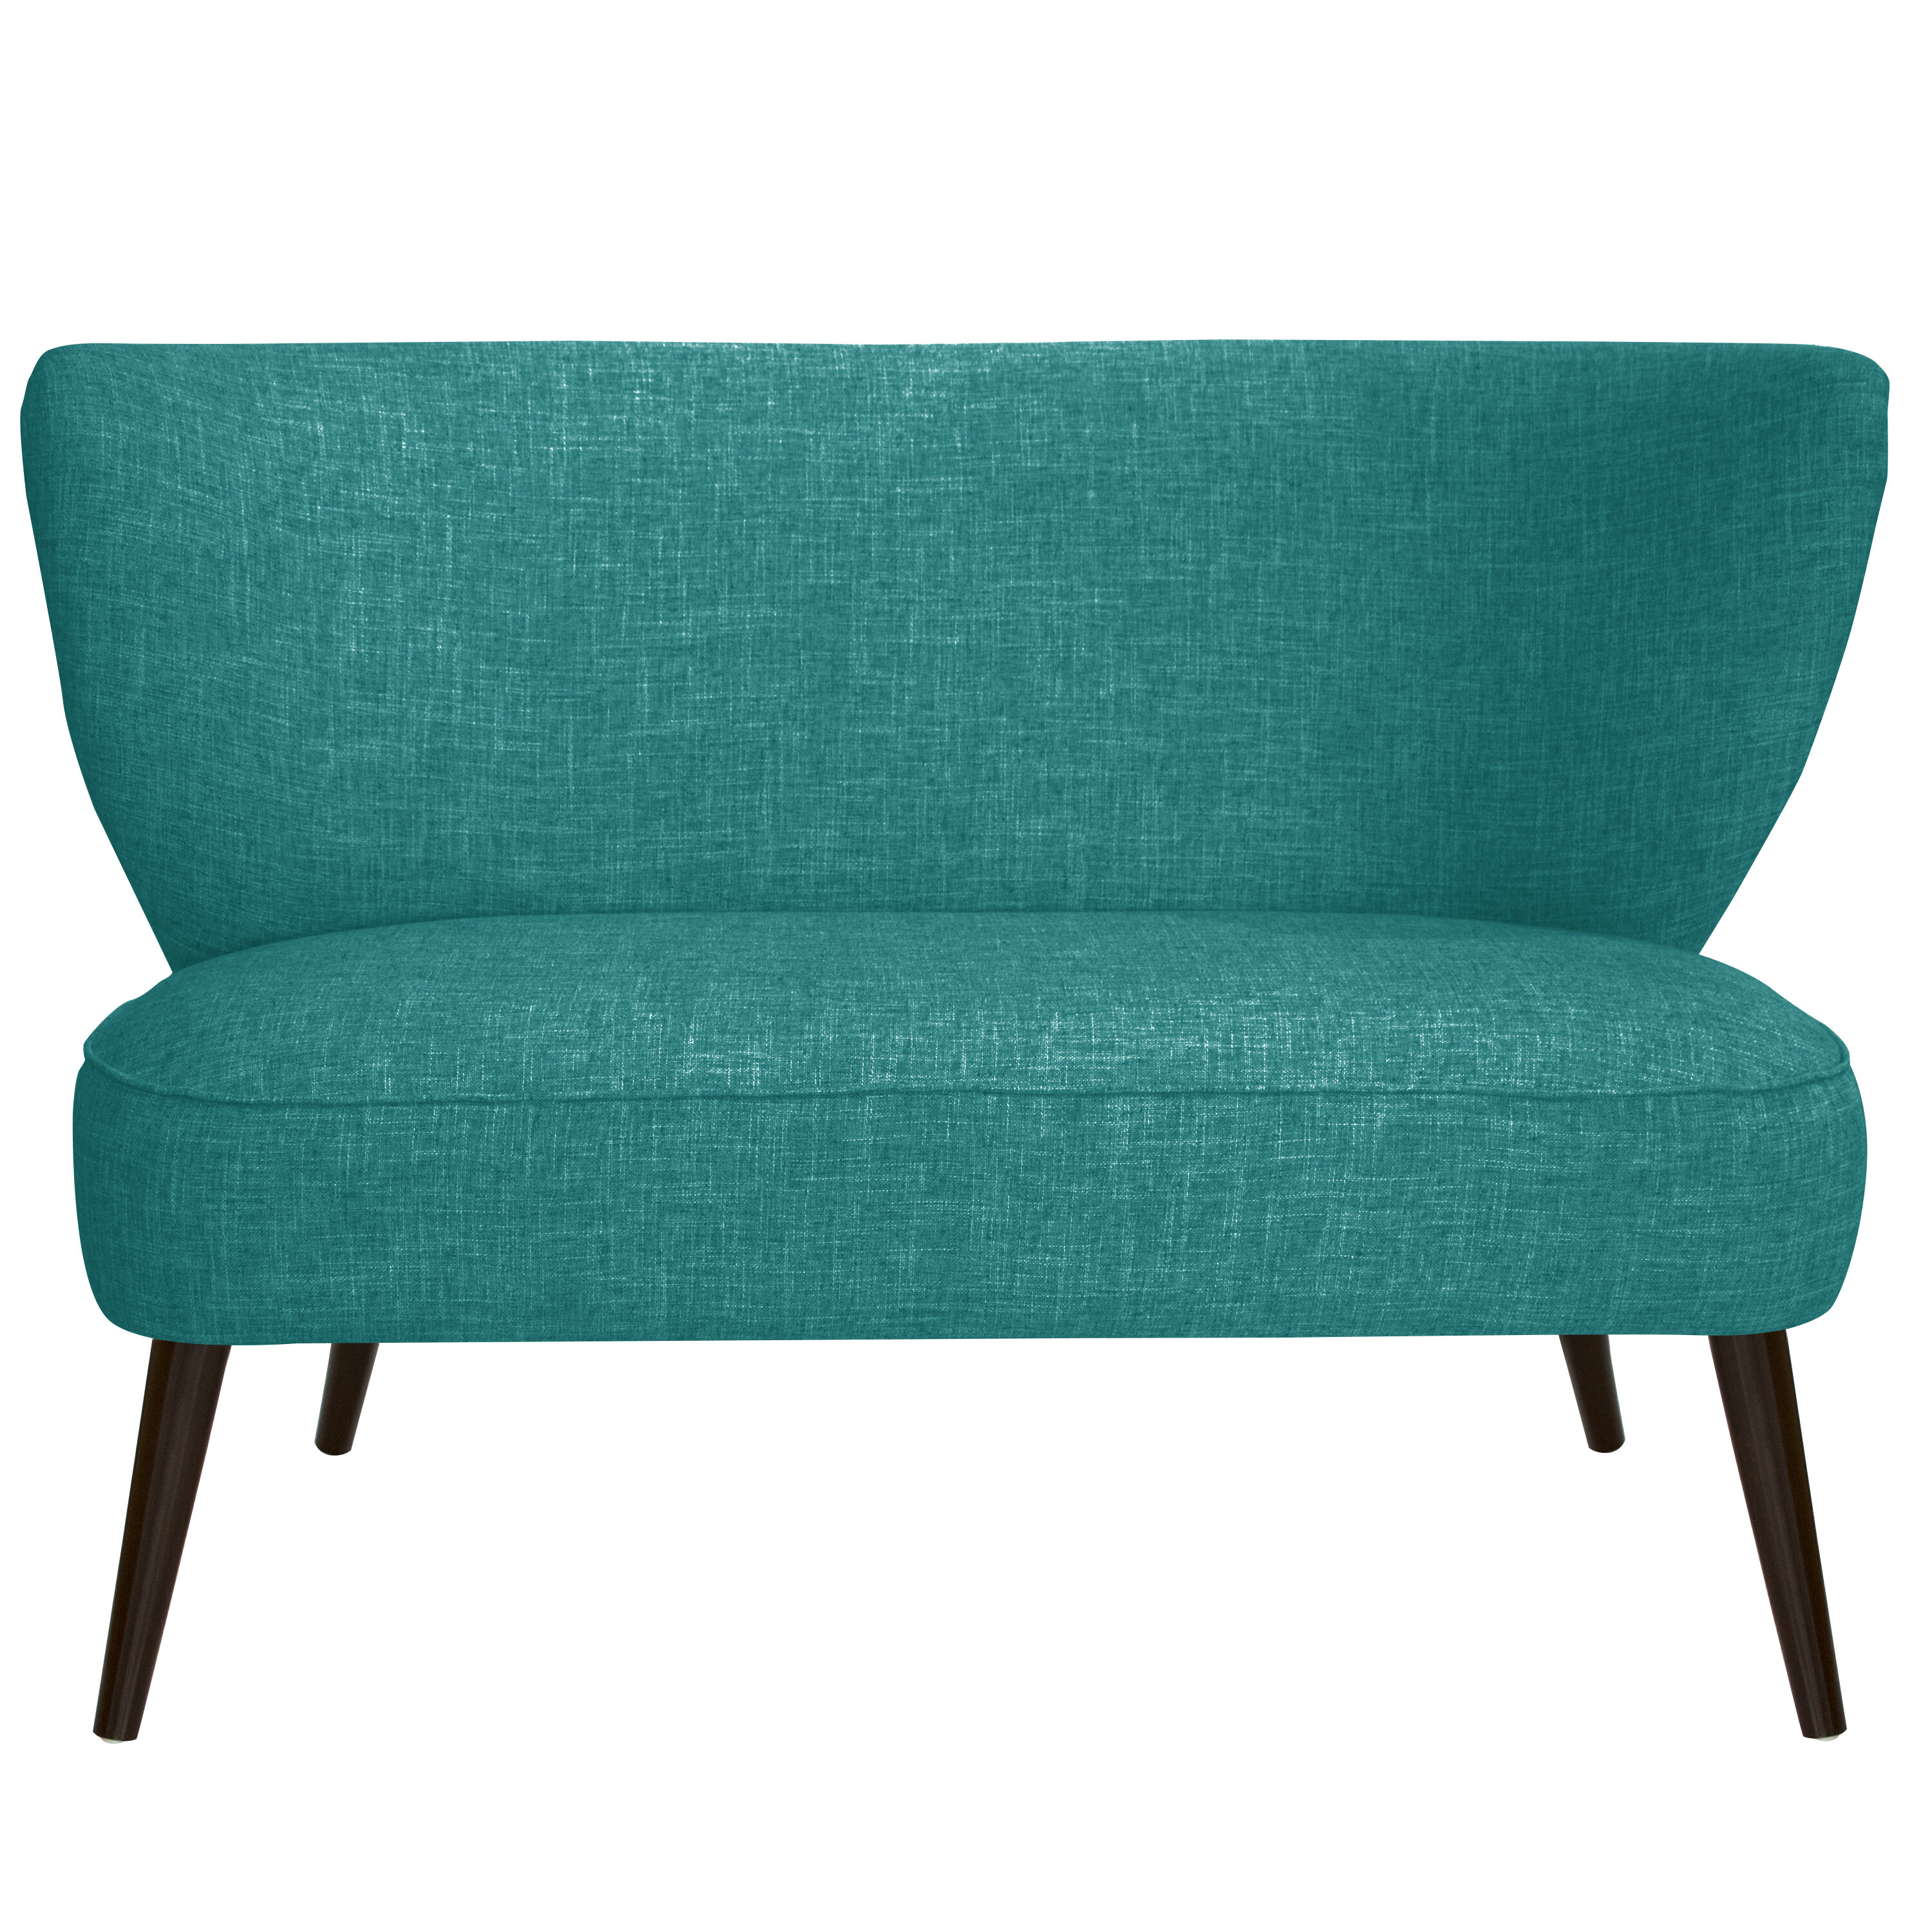 by loveseat number item contemporary products delta armless benchcraft ashley city steel